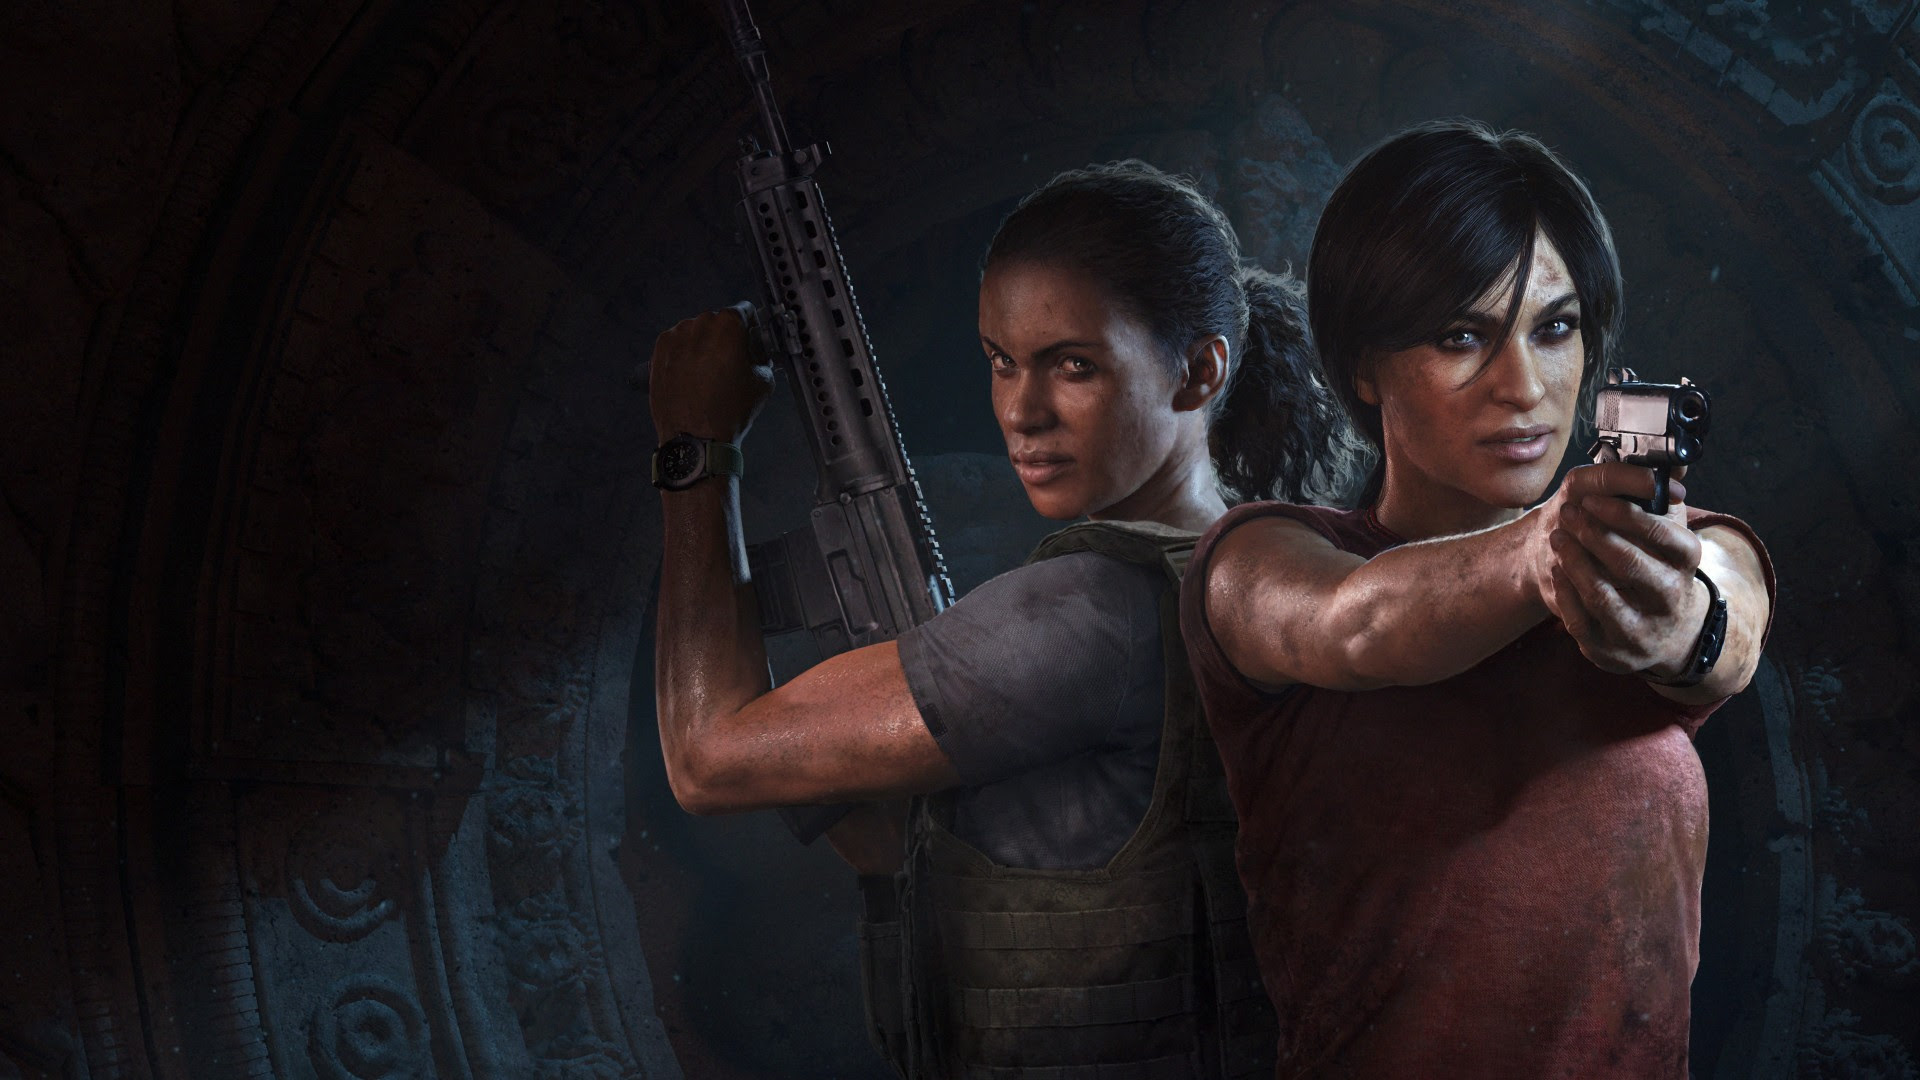 Uncharted: The Lost Legacy releases in two weeks, but here's a new look right now screenshot